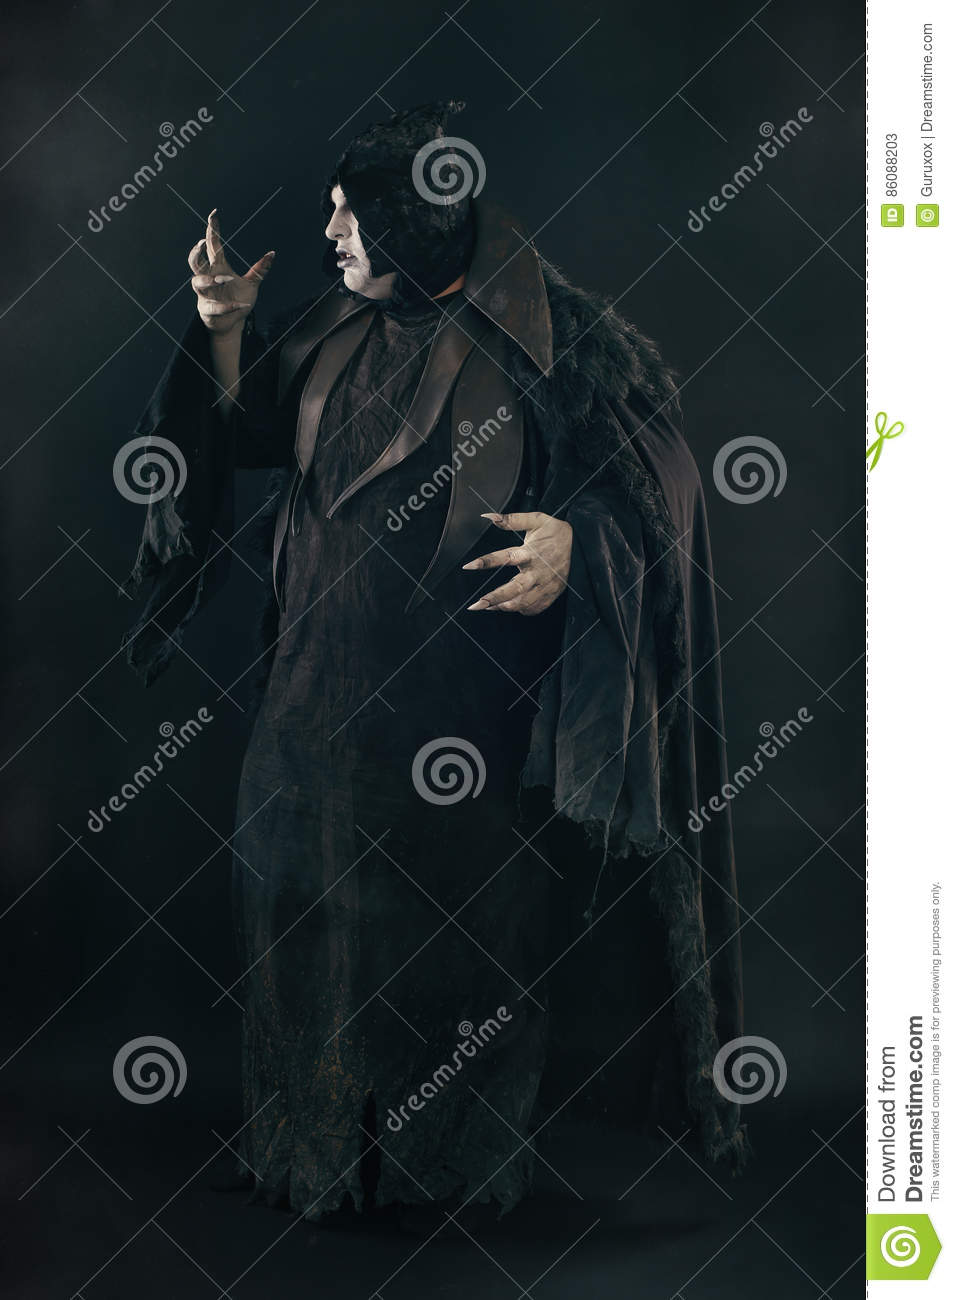 Spooky devil vamp with large scary nails. Hell and horror